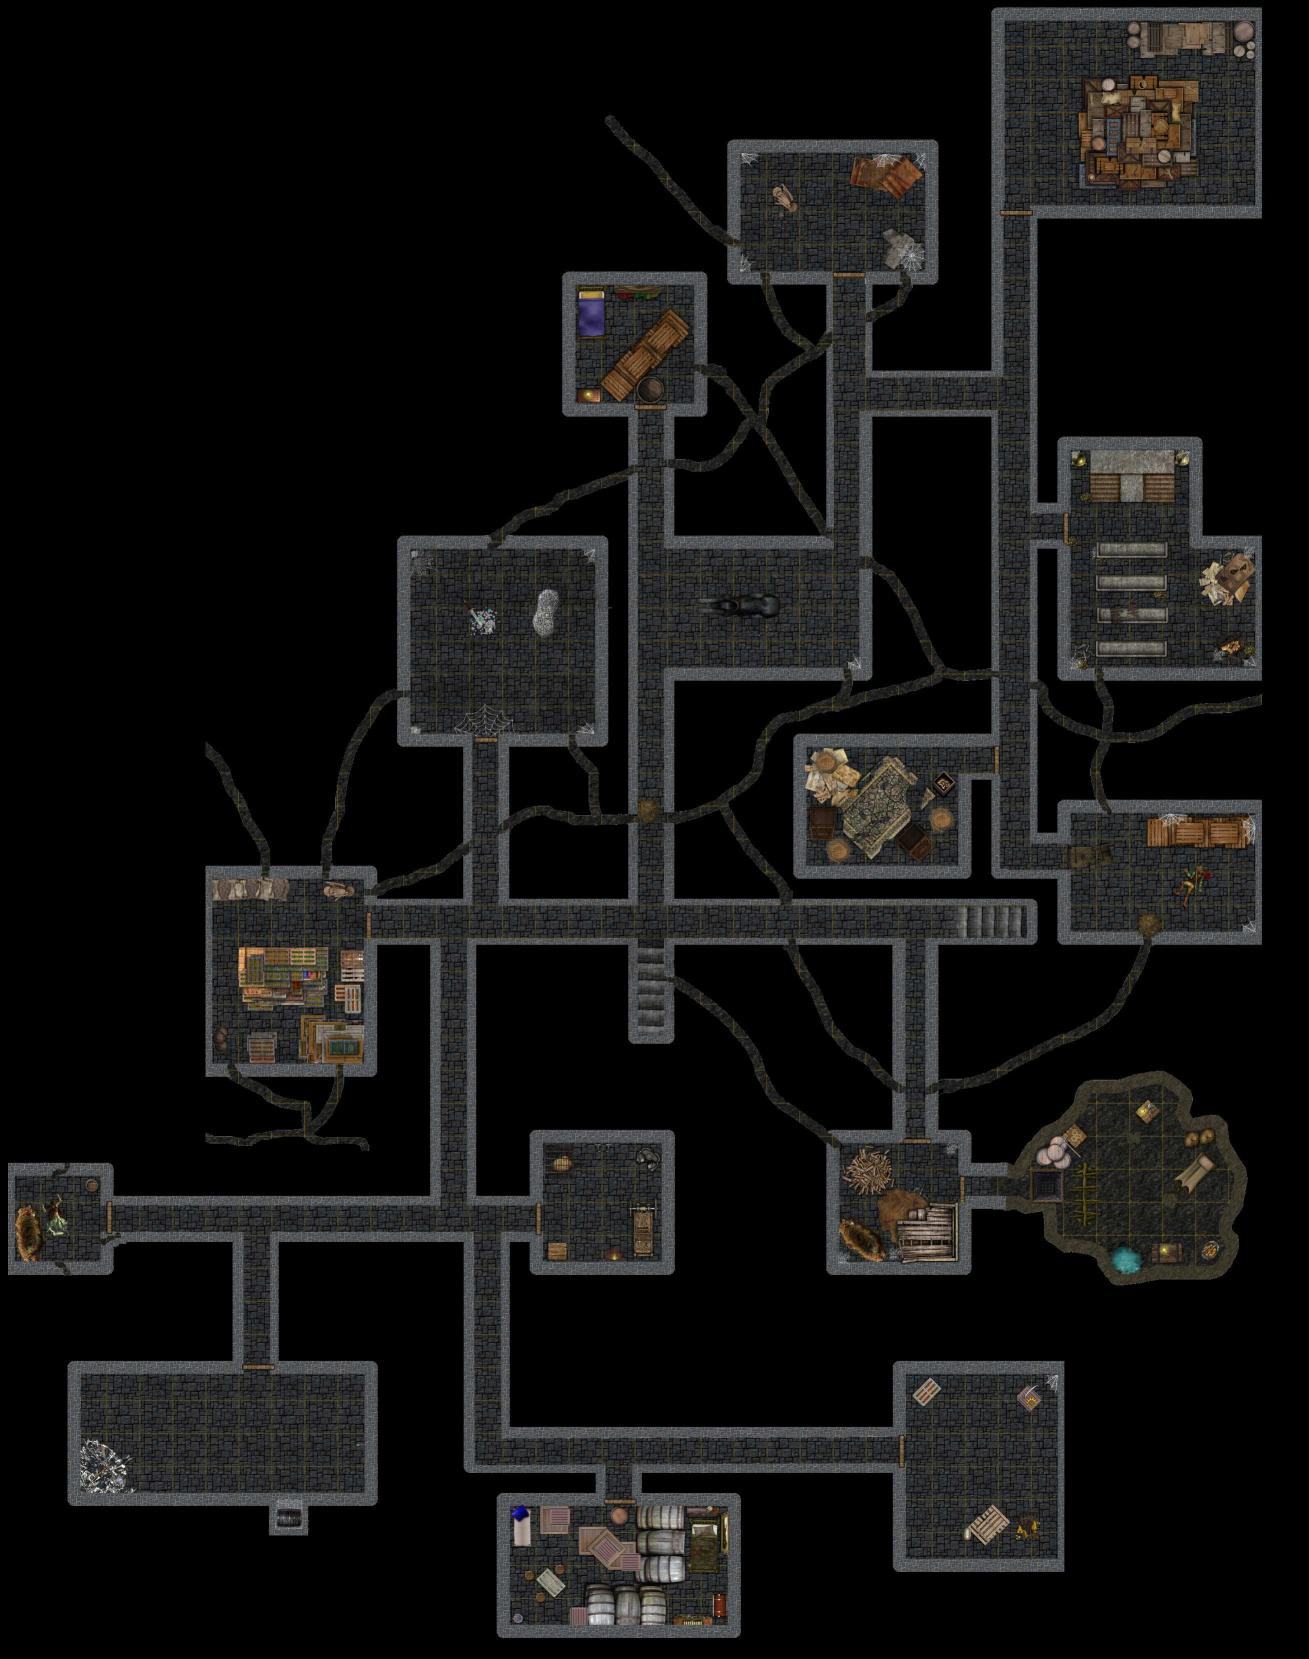 Hell Bridge Temple, Dungeon Level 2